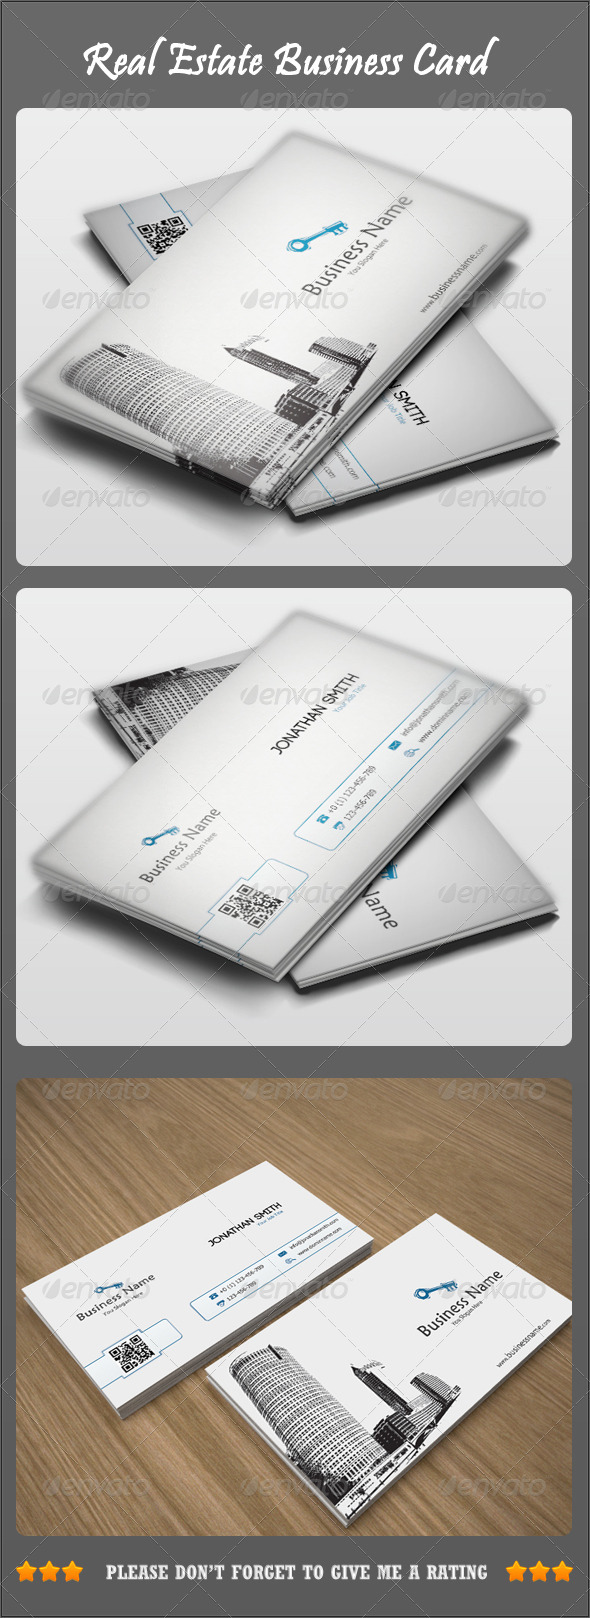 GraphicRiver Real Estate Business Card 3983495